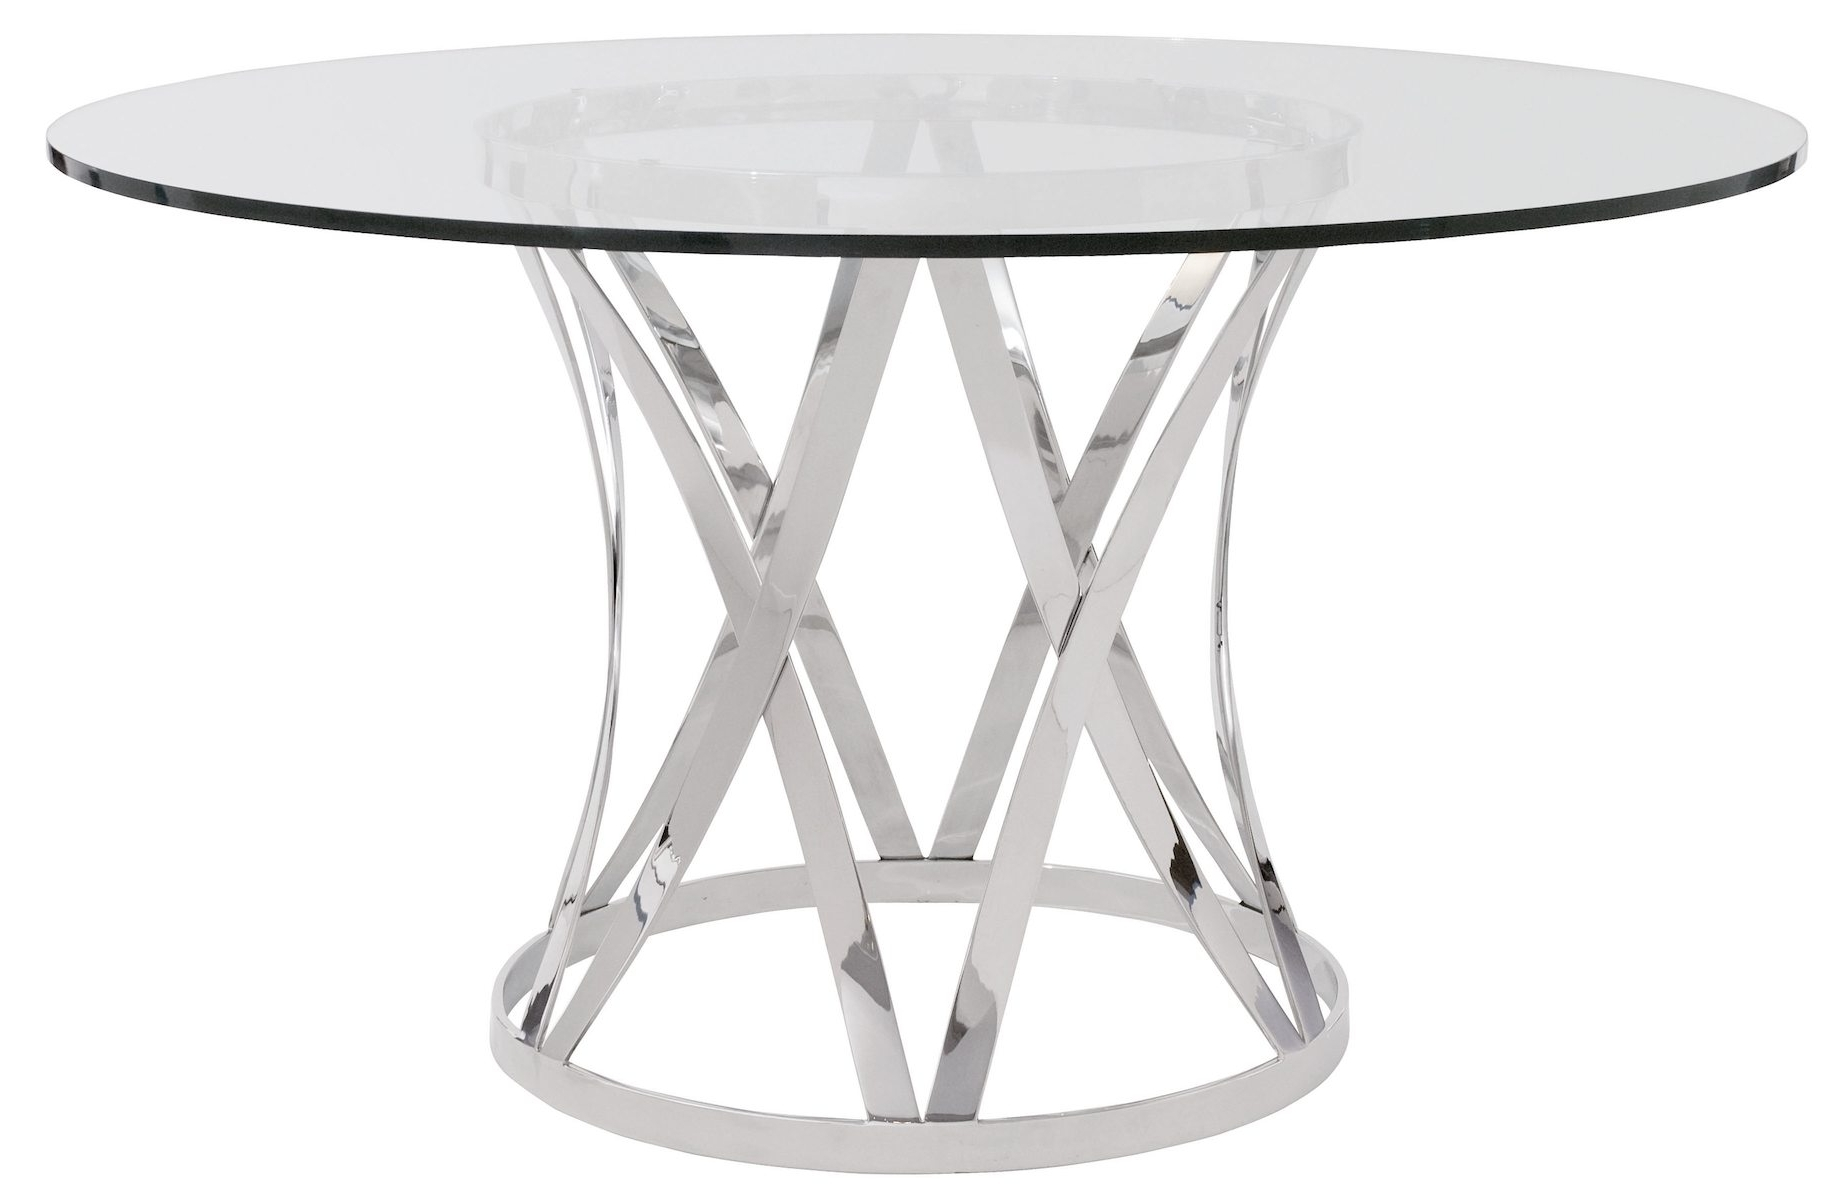 2018 Chrome Glass Dining Tables Pertaining To Awesome Round Eased Edge Profile Glass Dining Table With Polished (Gallery 22 of 25)